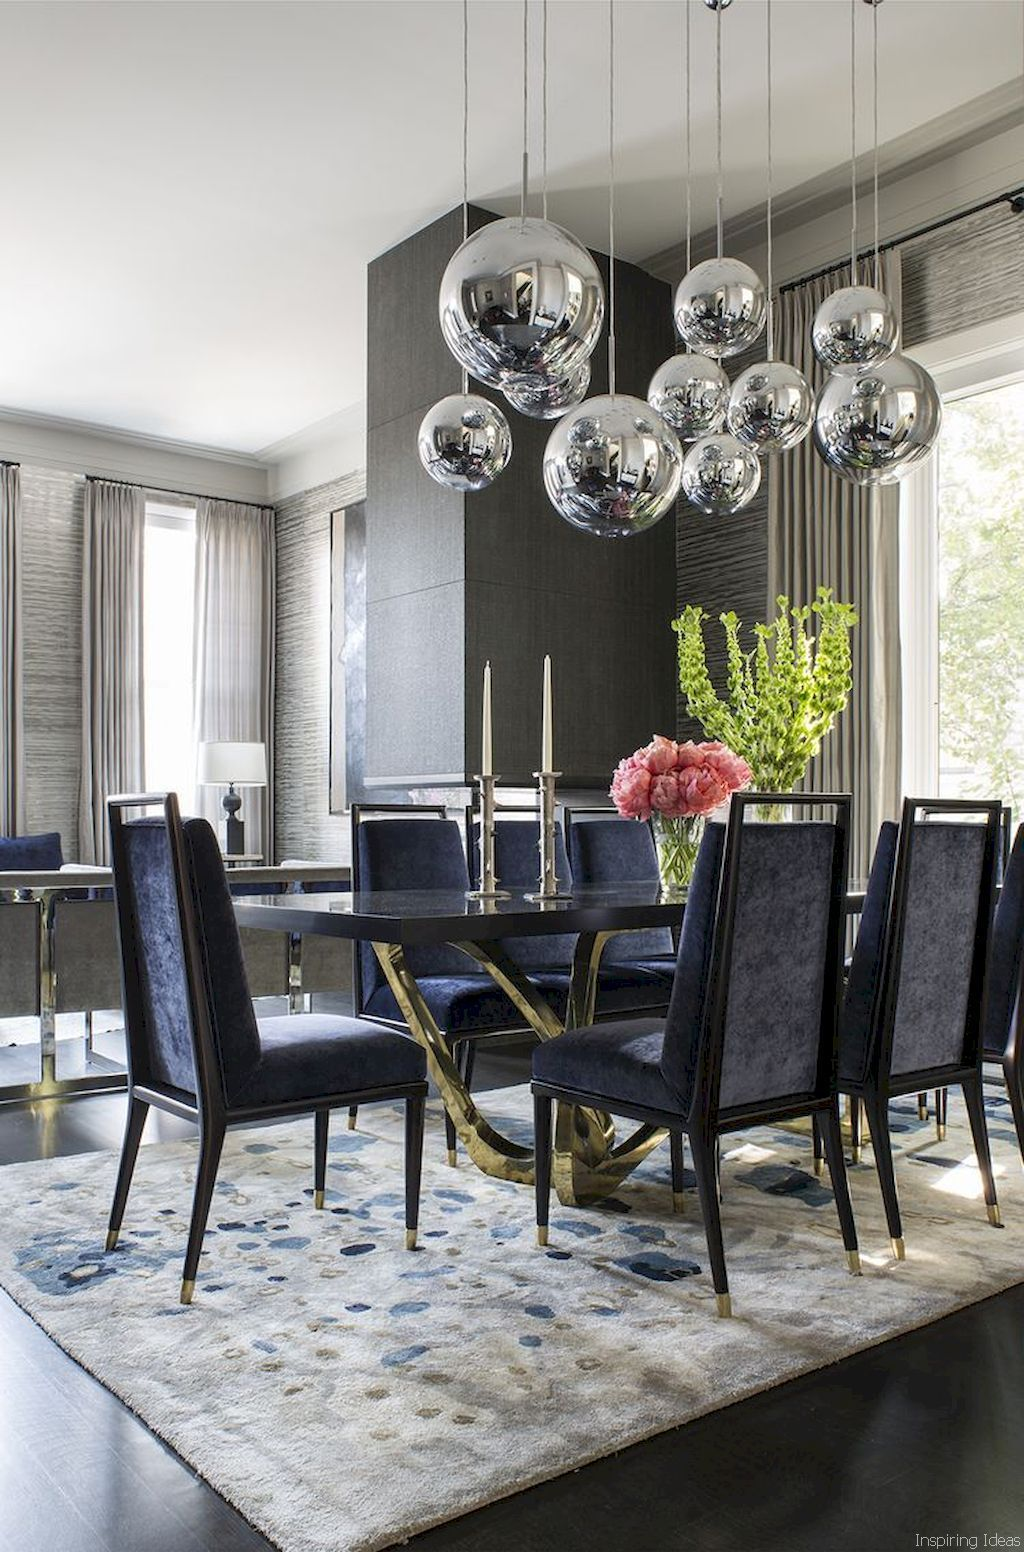 Download Catalogue In 2020 Elegant Dining Room Beautiful Dining Rooms Dining Room Design